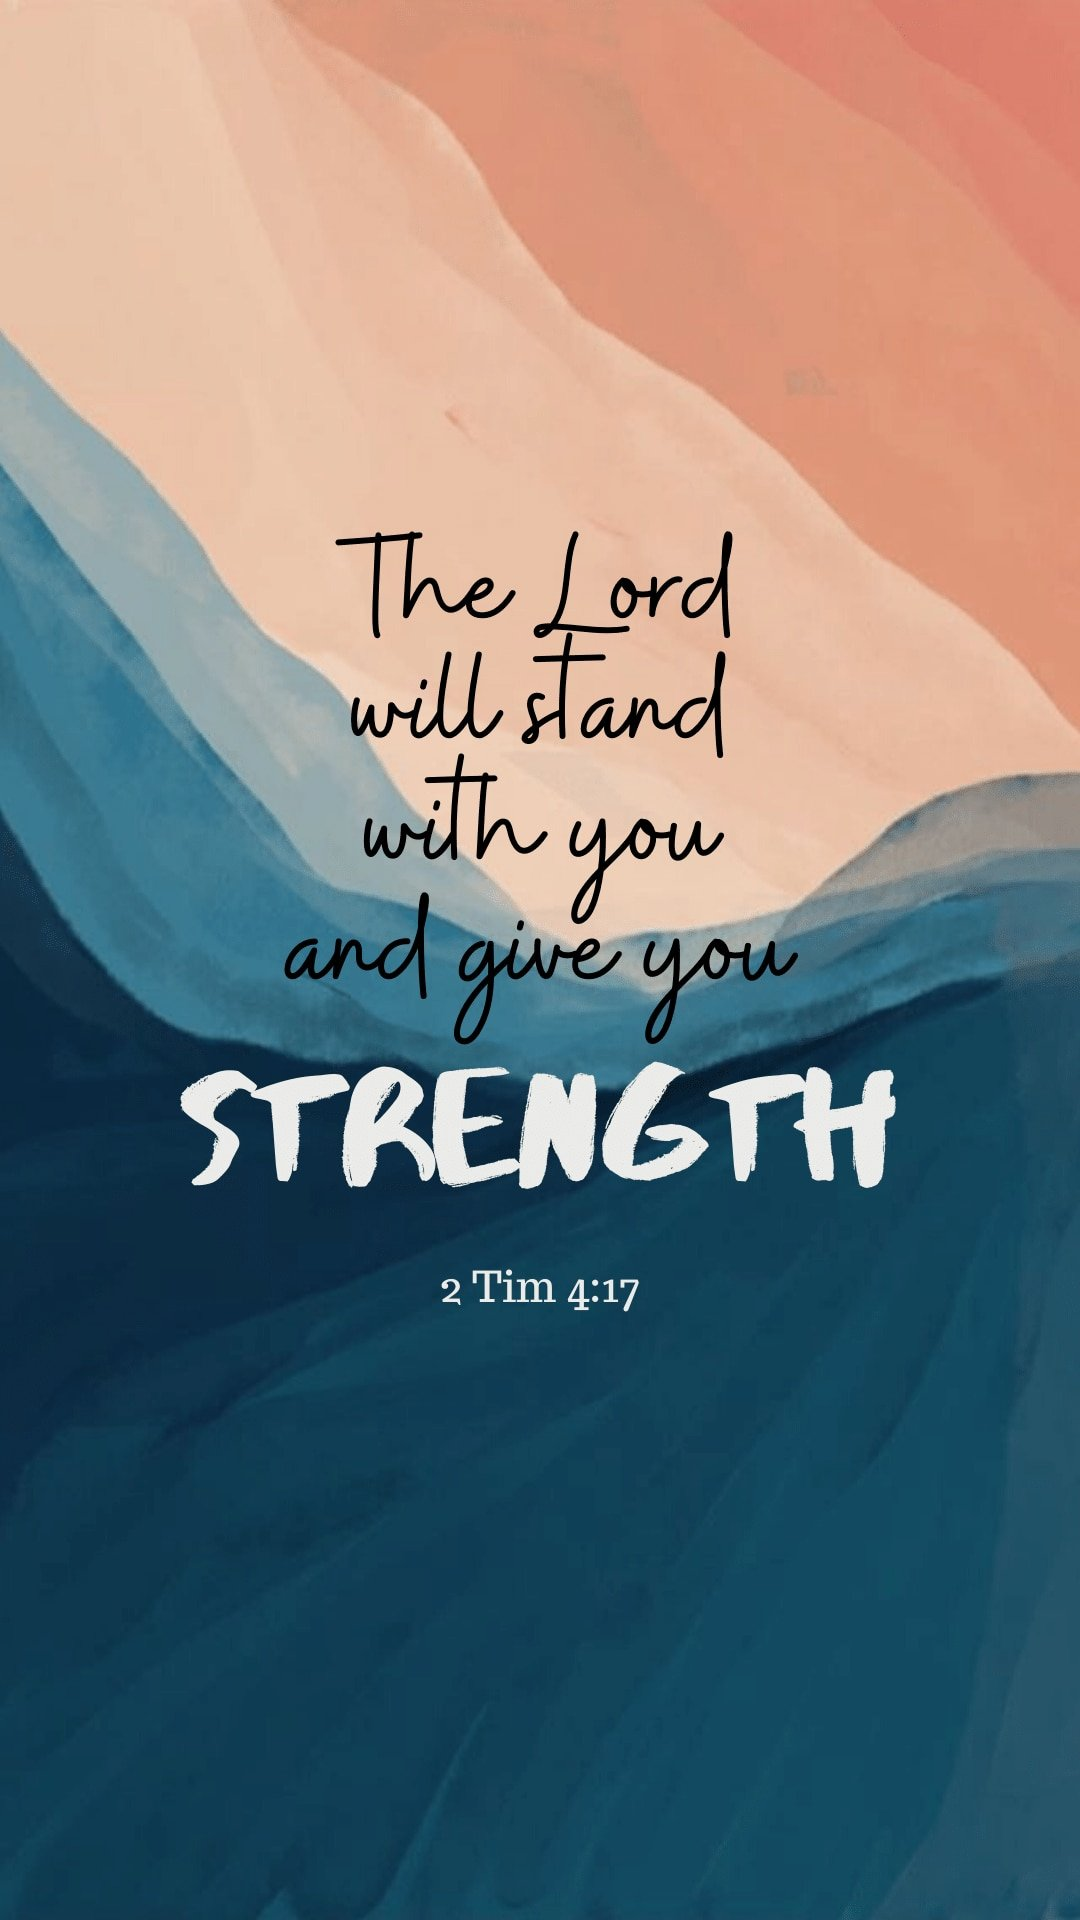 Encouraging Quotes and Bible Verses Wallpapers 1080x1920